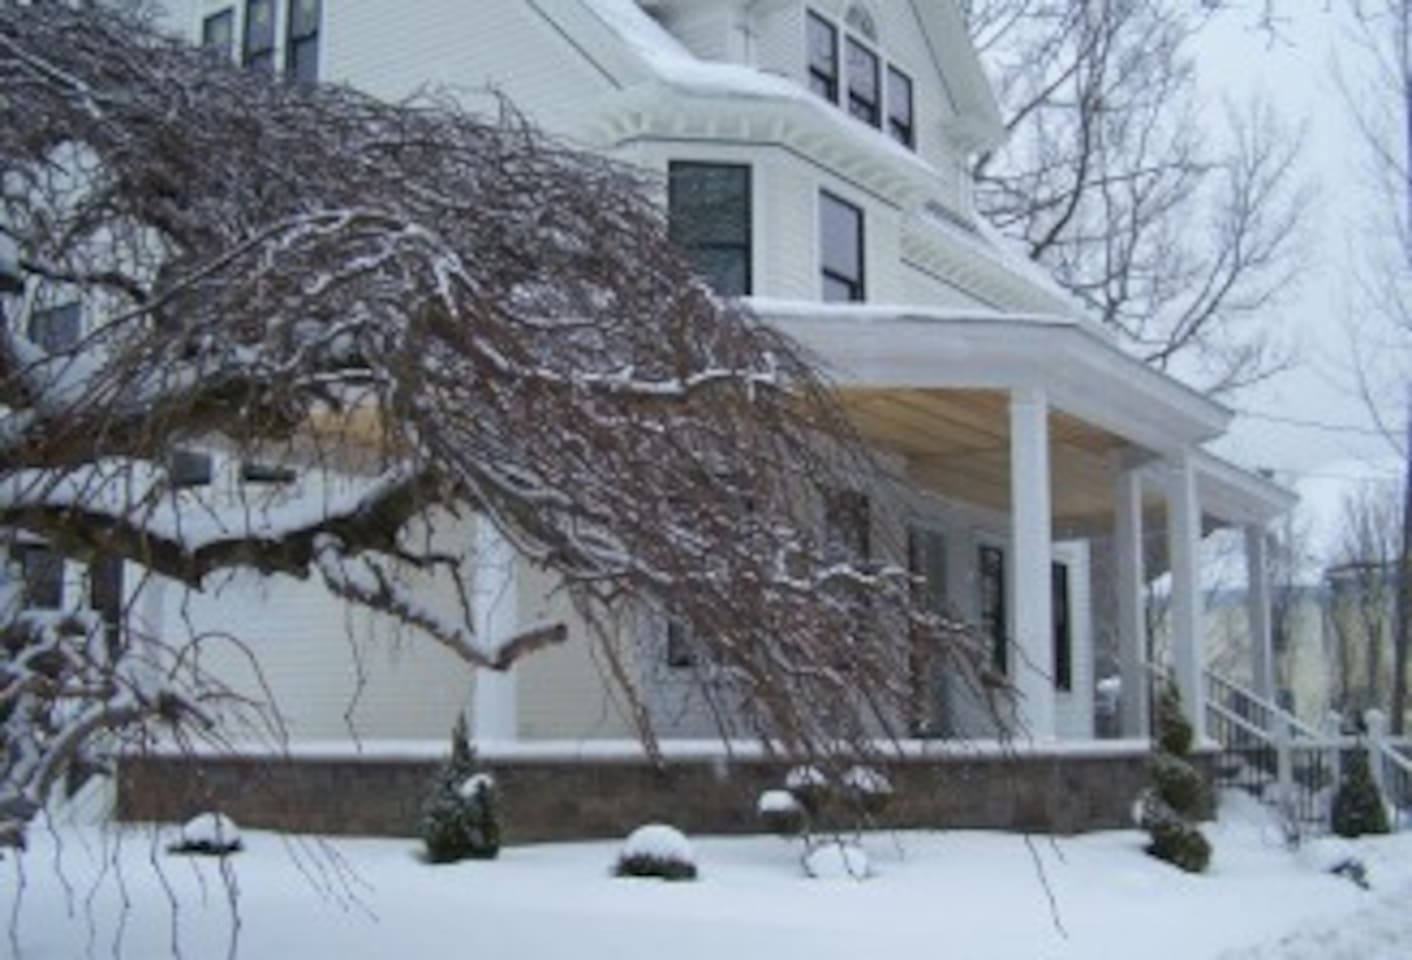 Winter scene of front of house